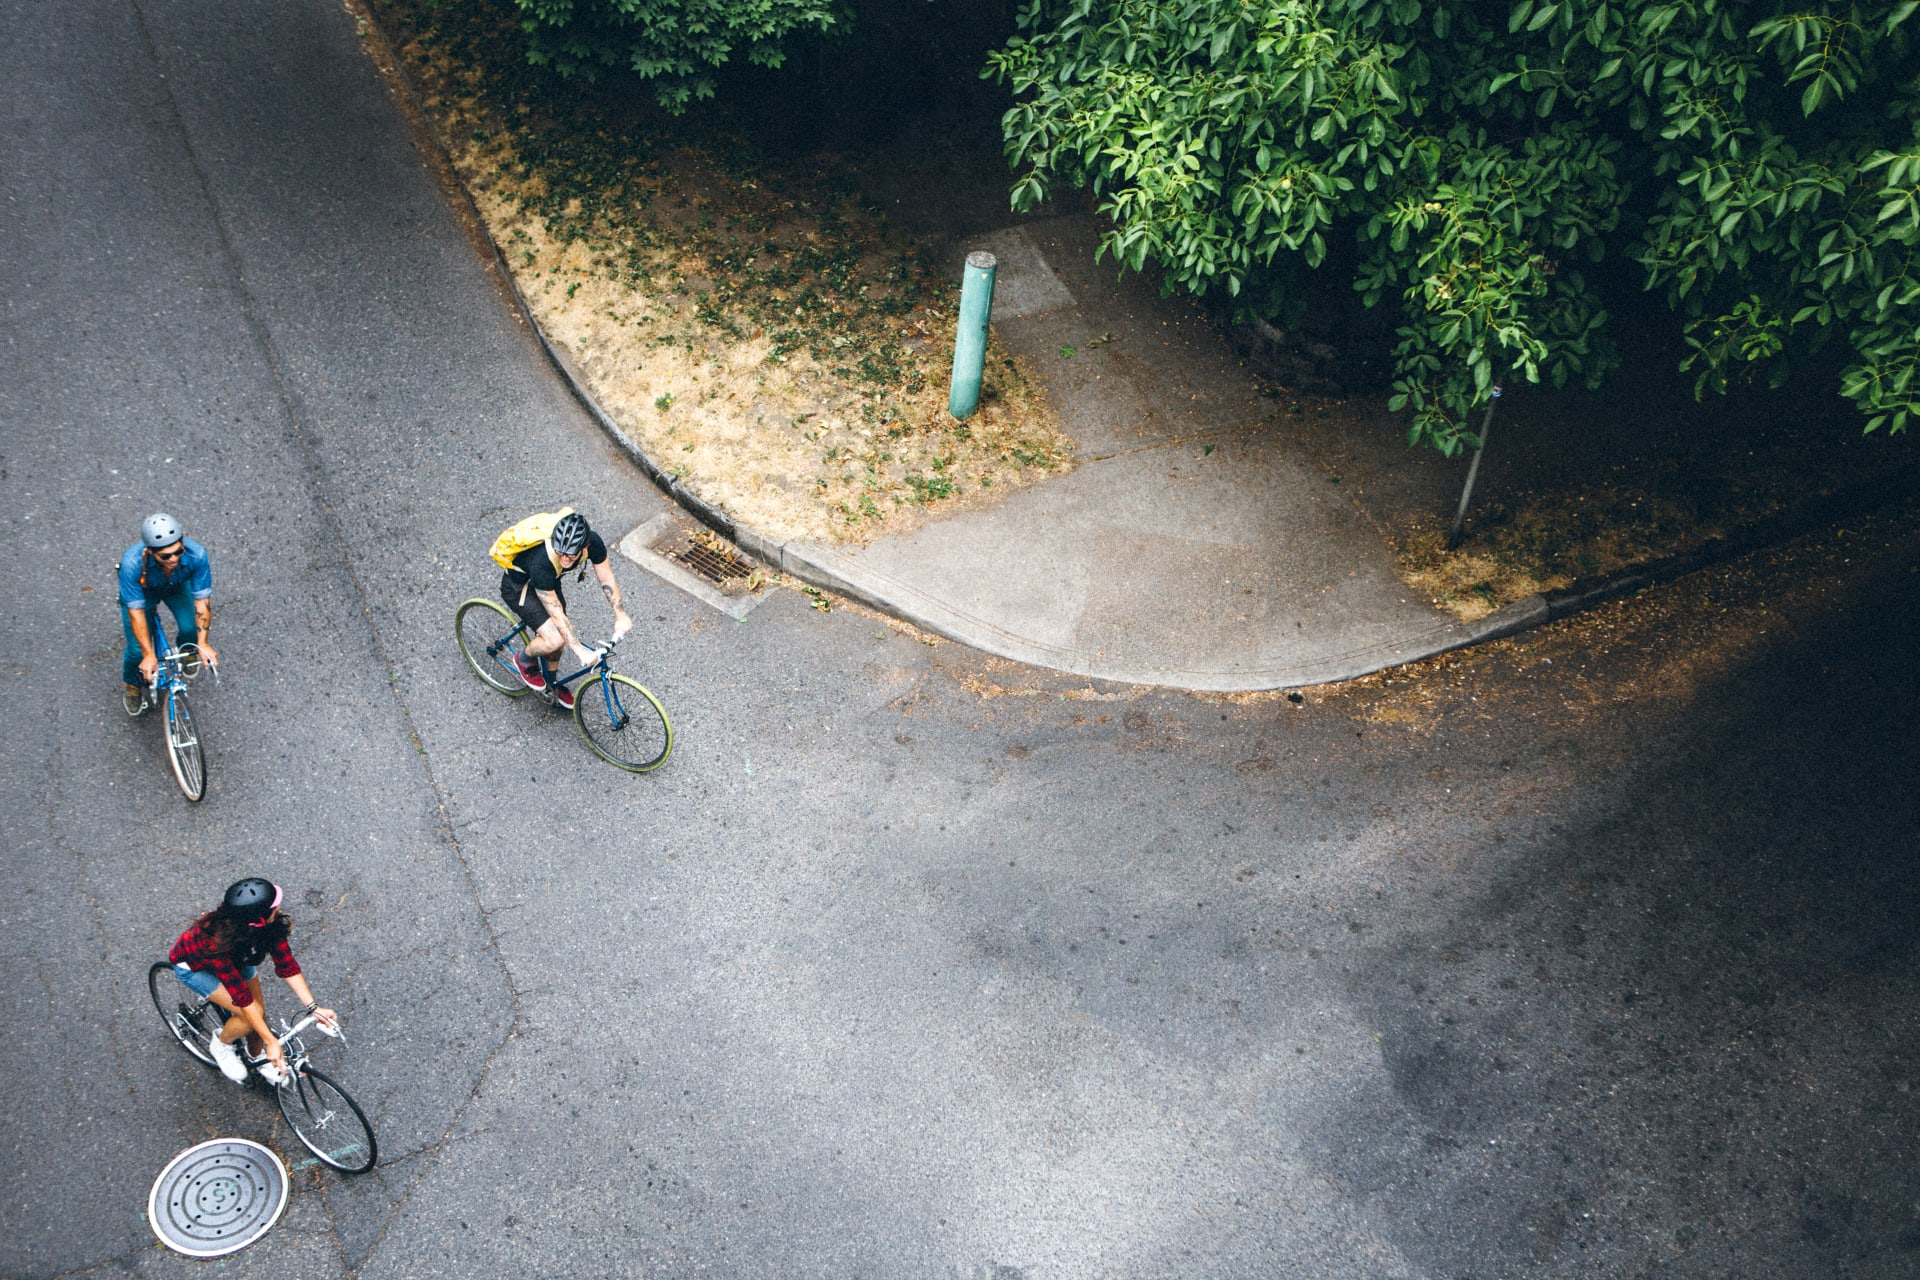 road crossing with three cyclists from above